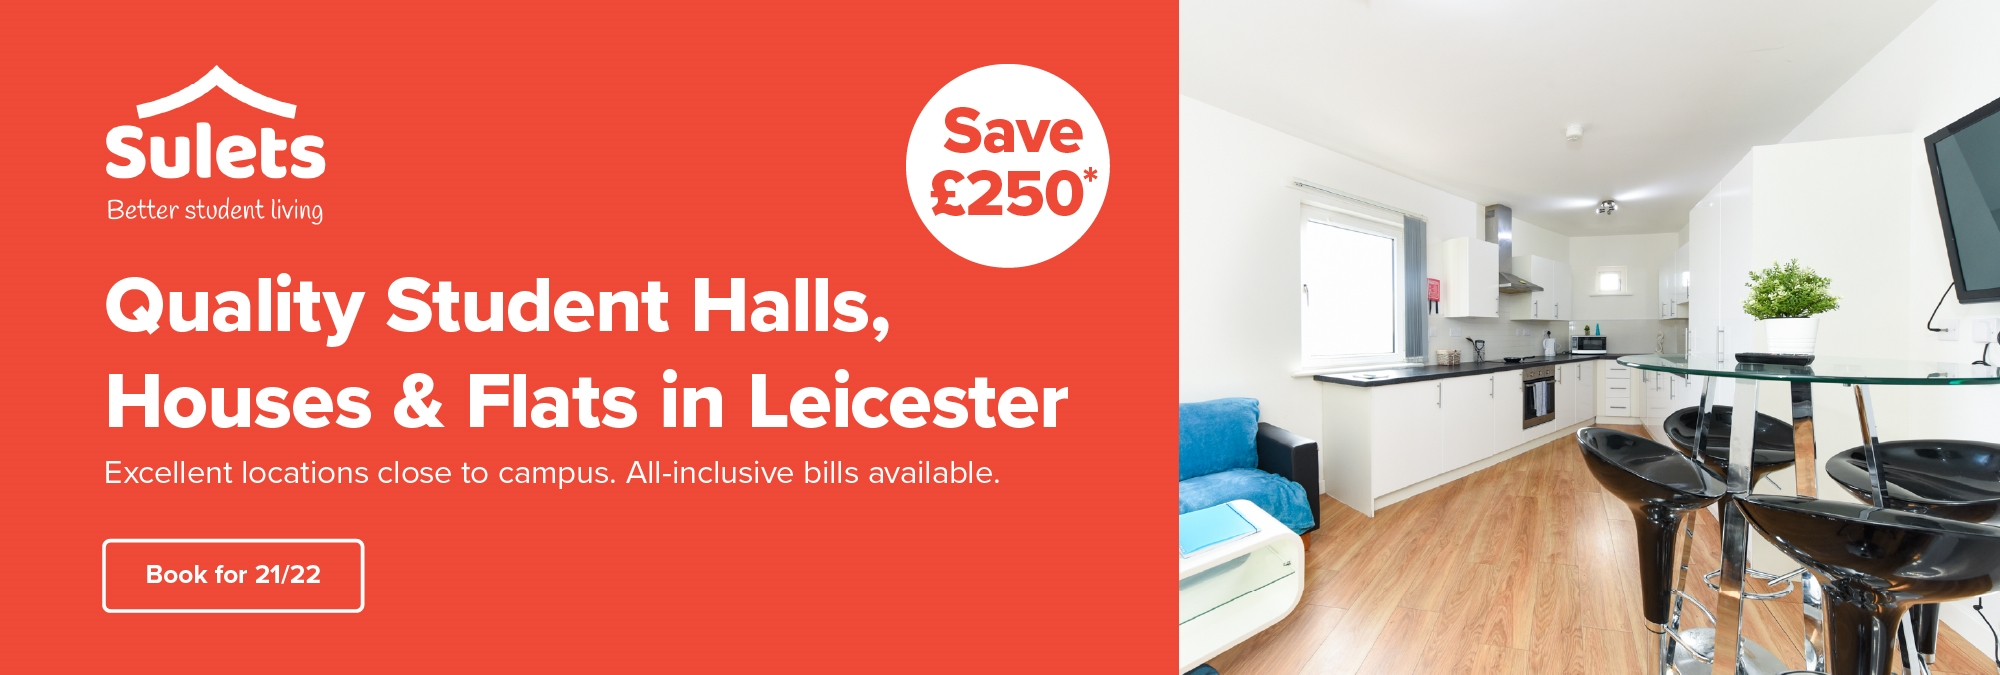 Quality student halls, houses and flats in leicester - SU LETS ADVERTISEMENT